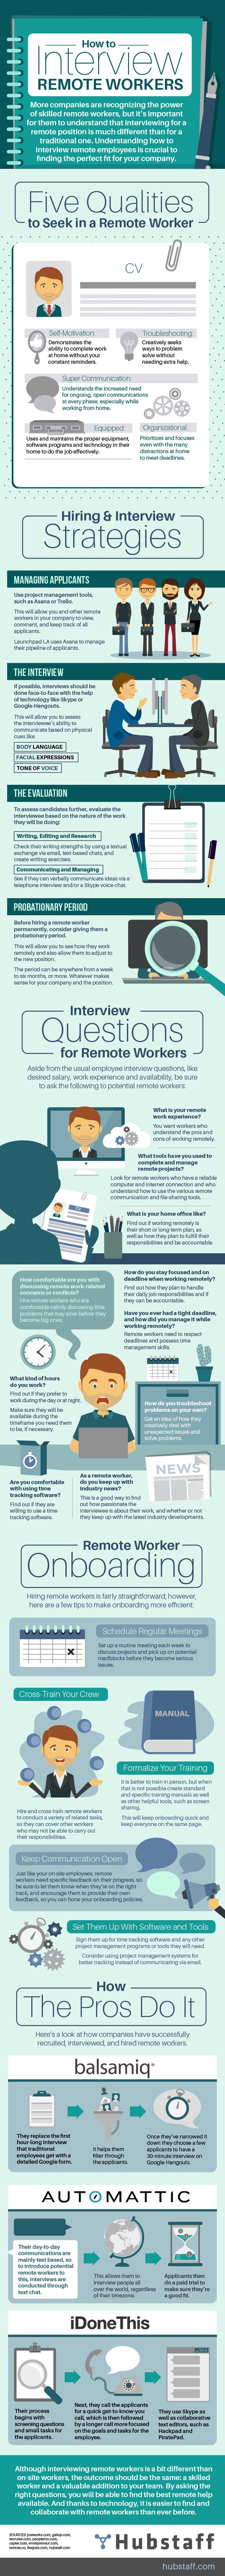 How to Interview Remote Workers [Infographic] | SEJ